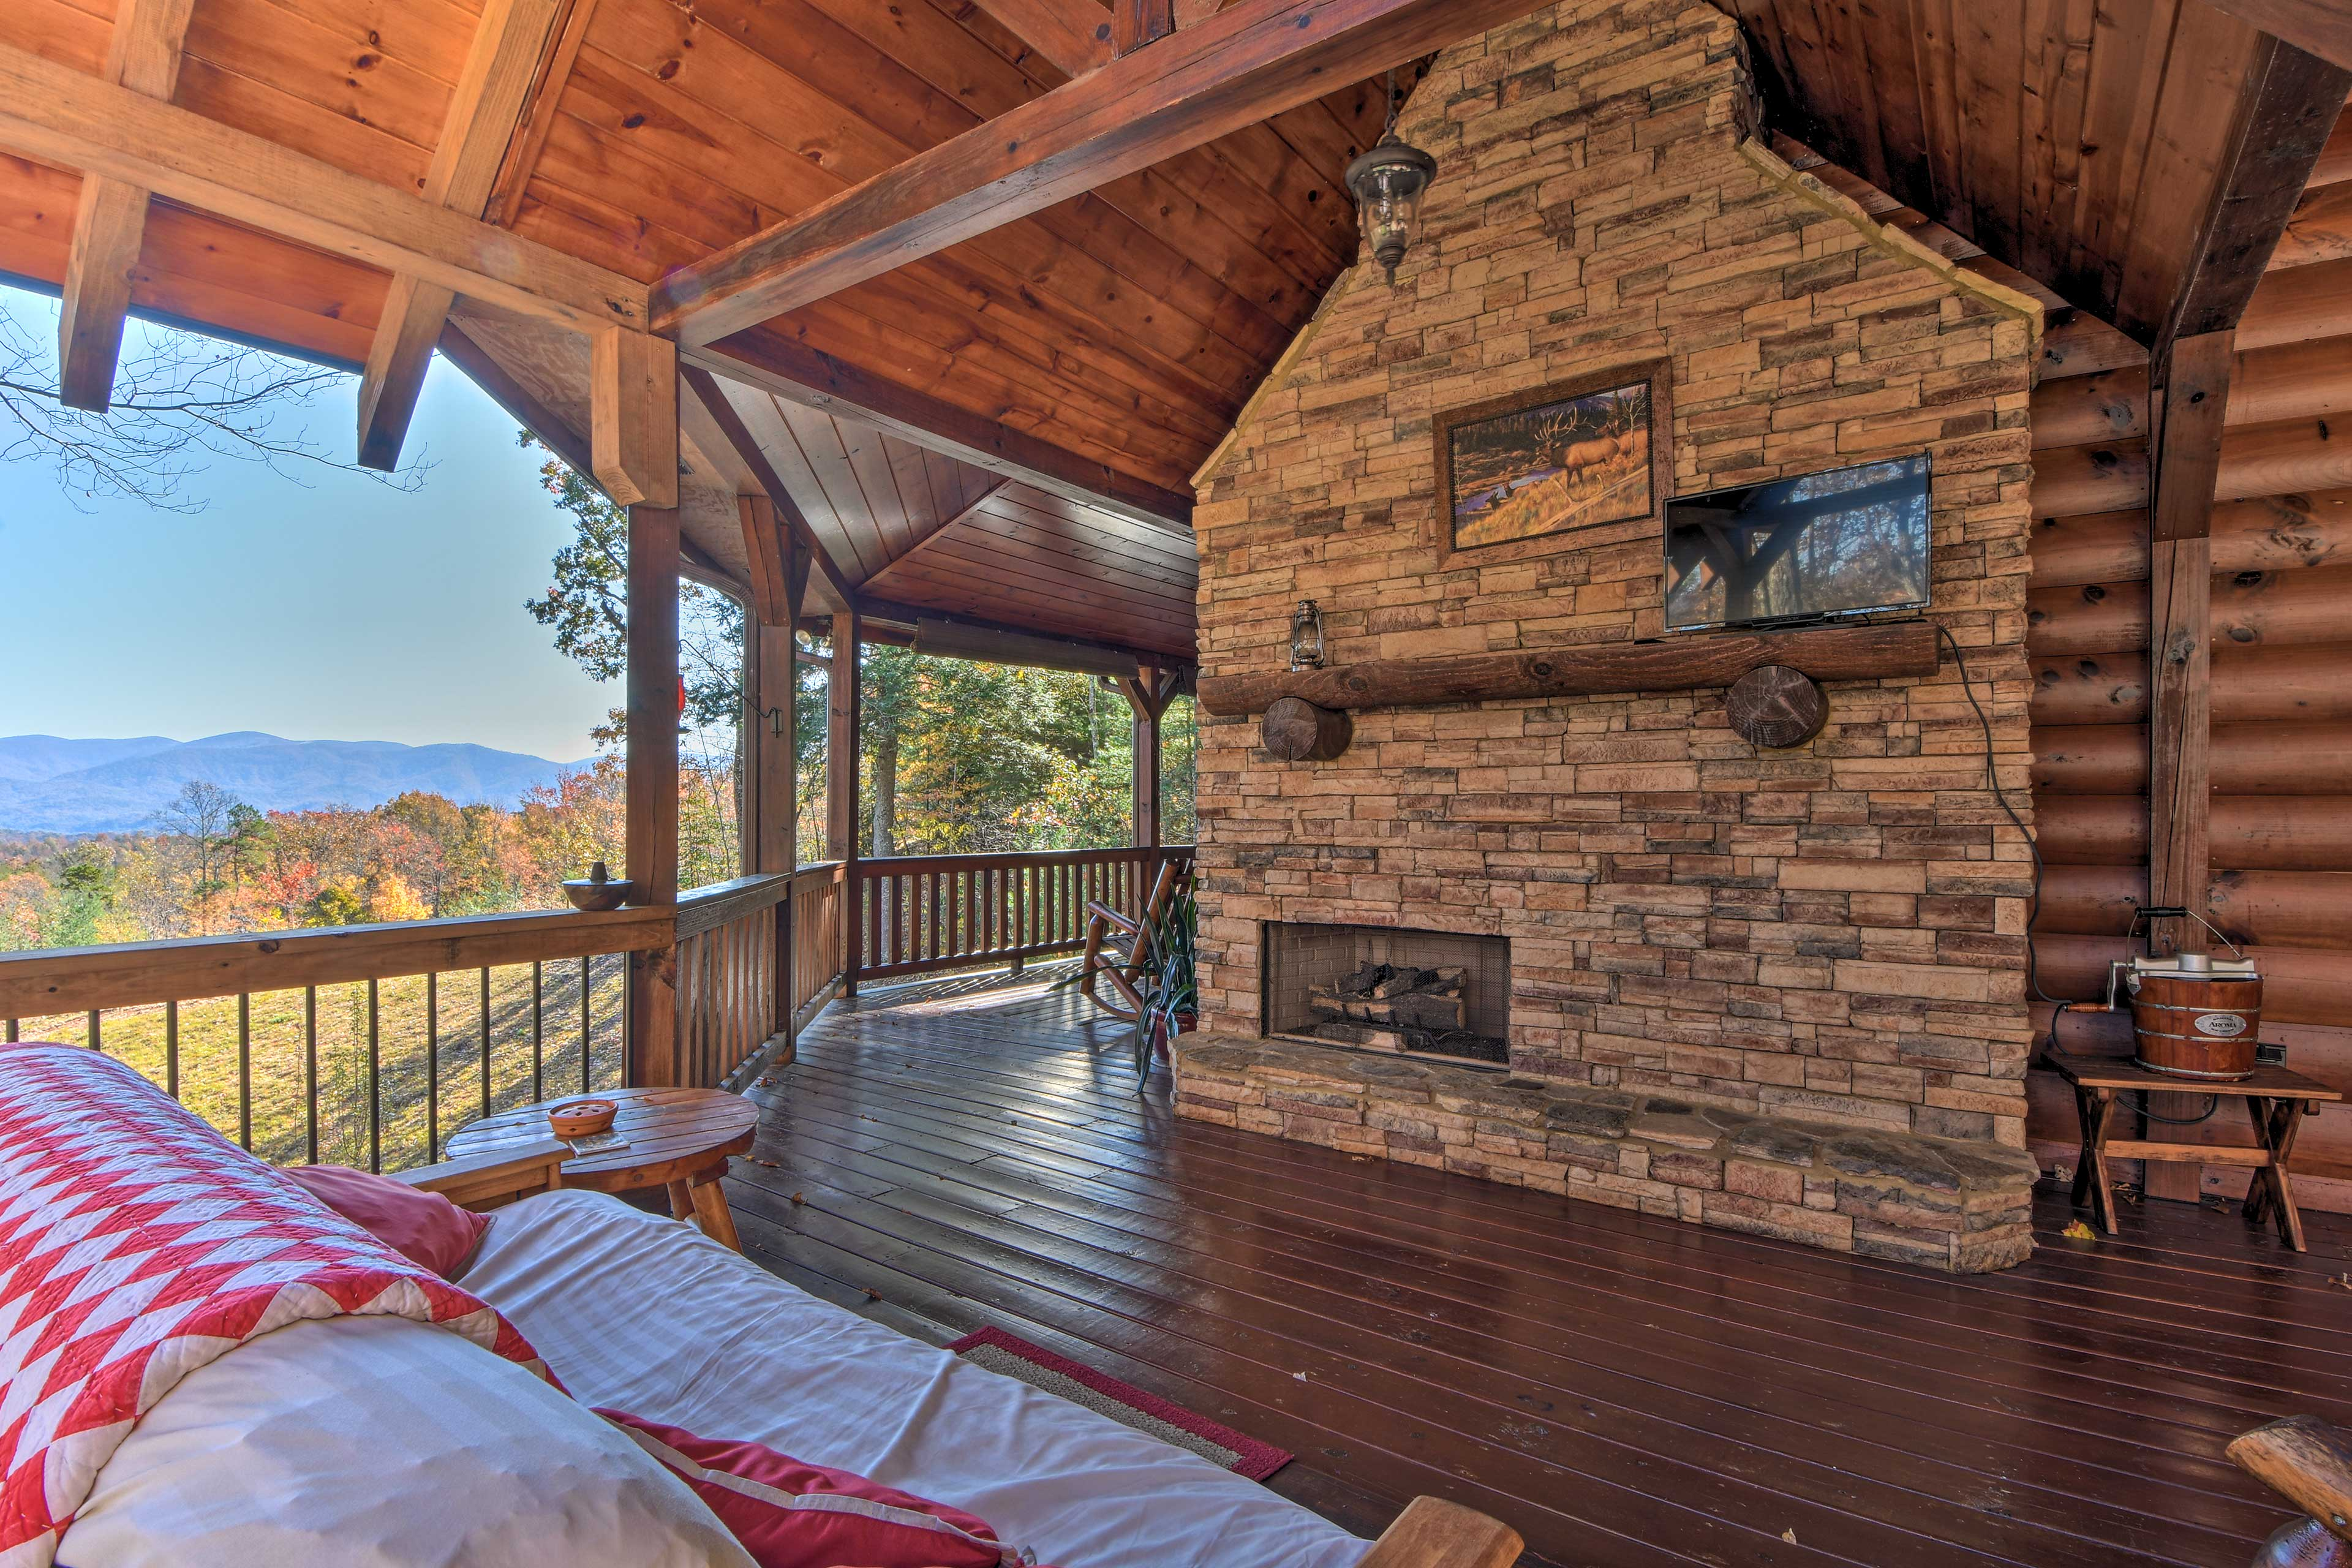 Curl up by the outdoor fire and watch the spectacular sunset over the mountains.